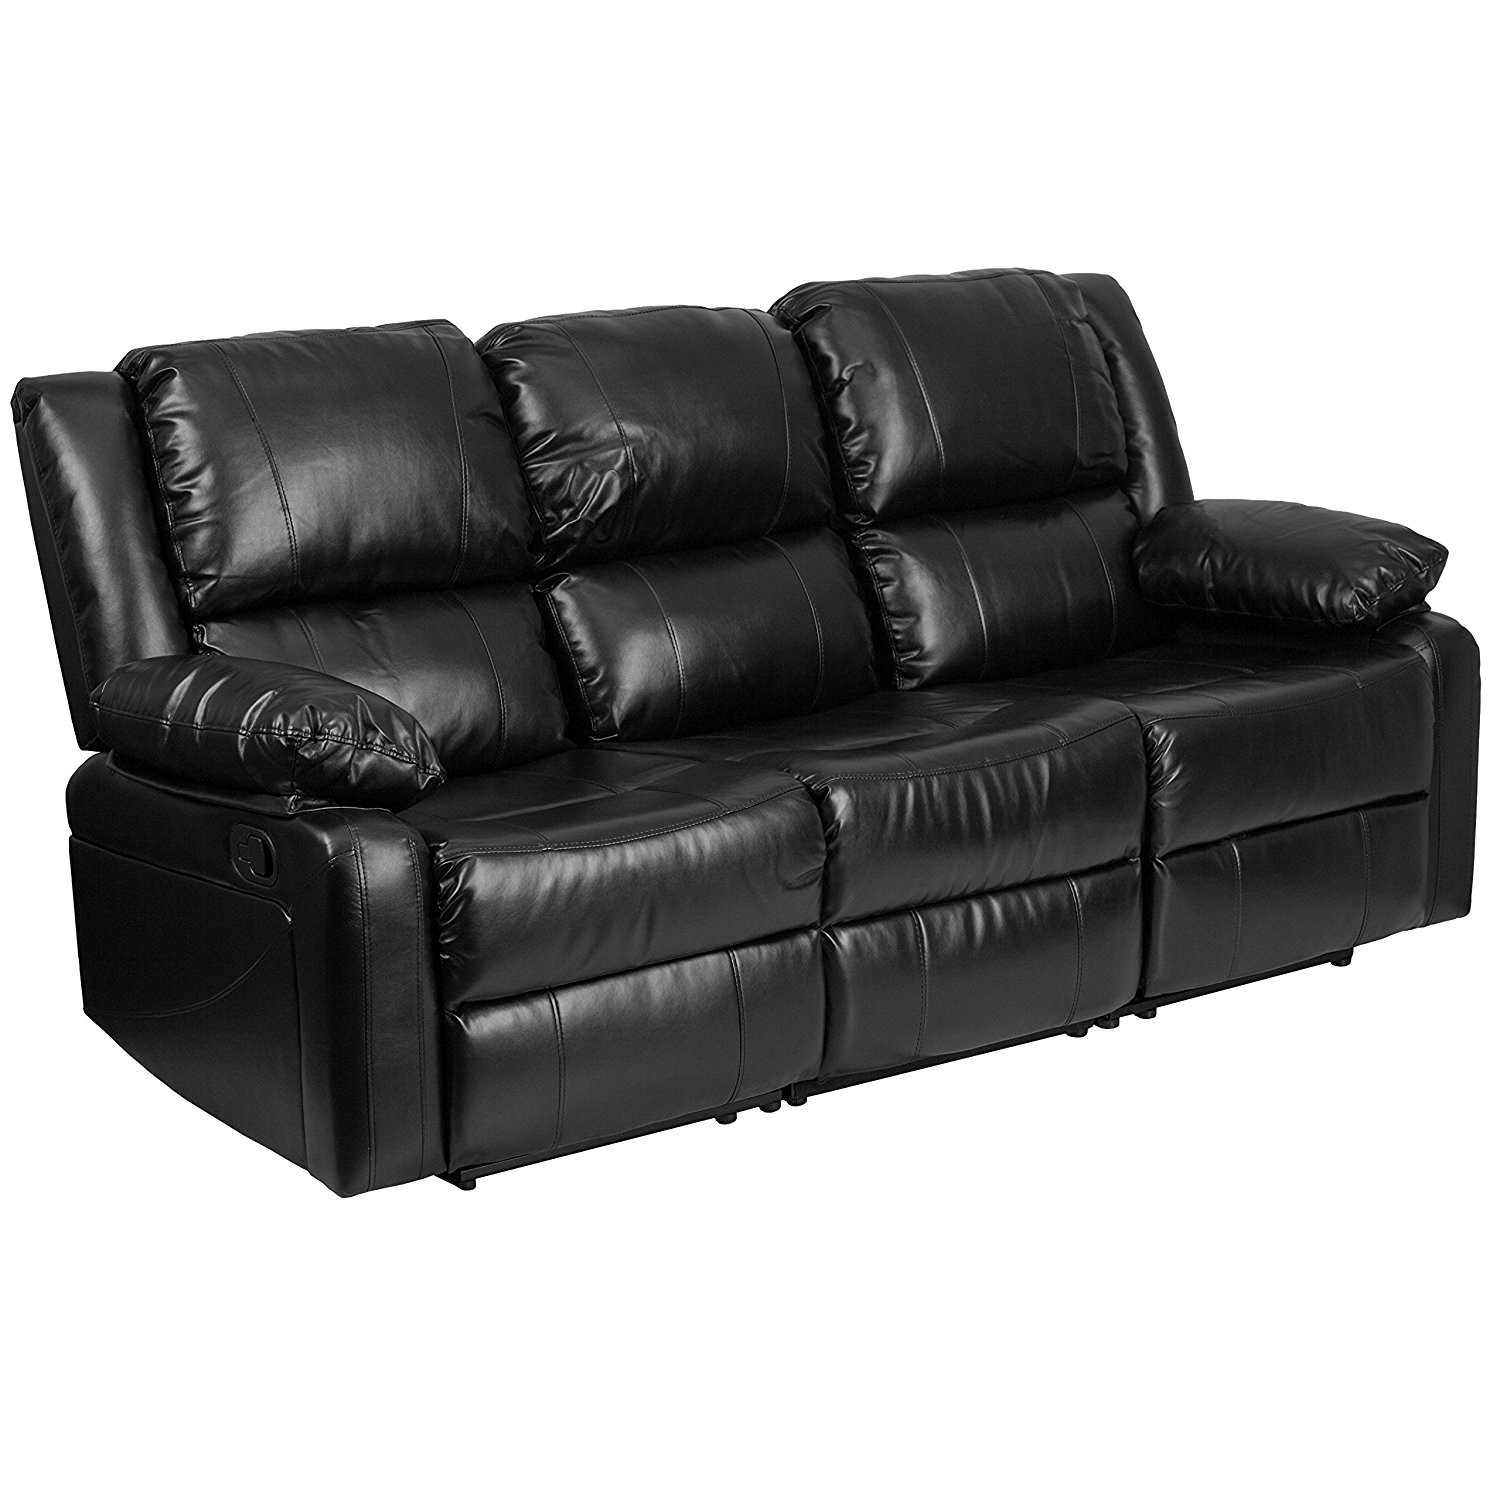 Modern Black Leather sofa Beautiful Amazon Flash Furniture Harmony Series Black Leather sofa with Pattern